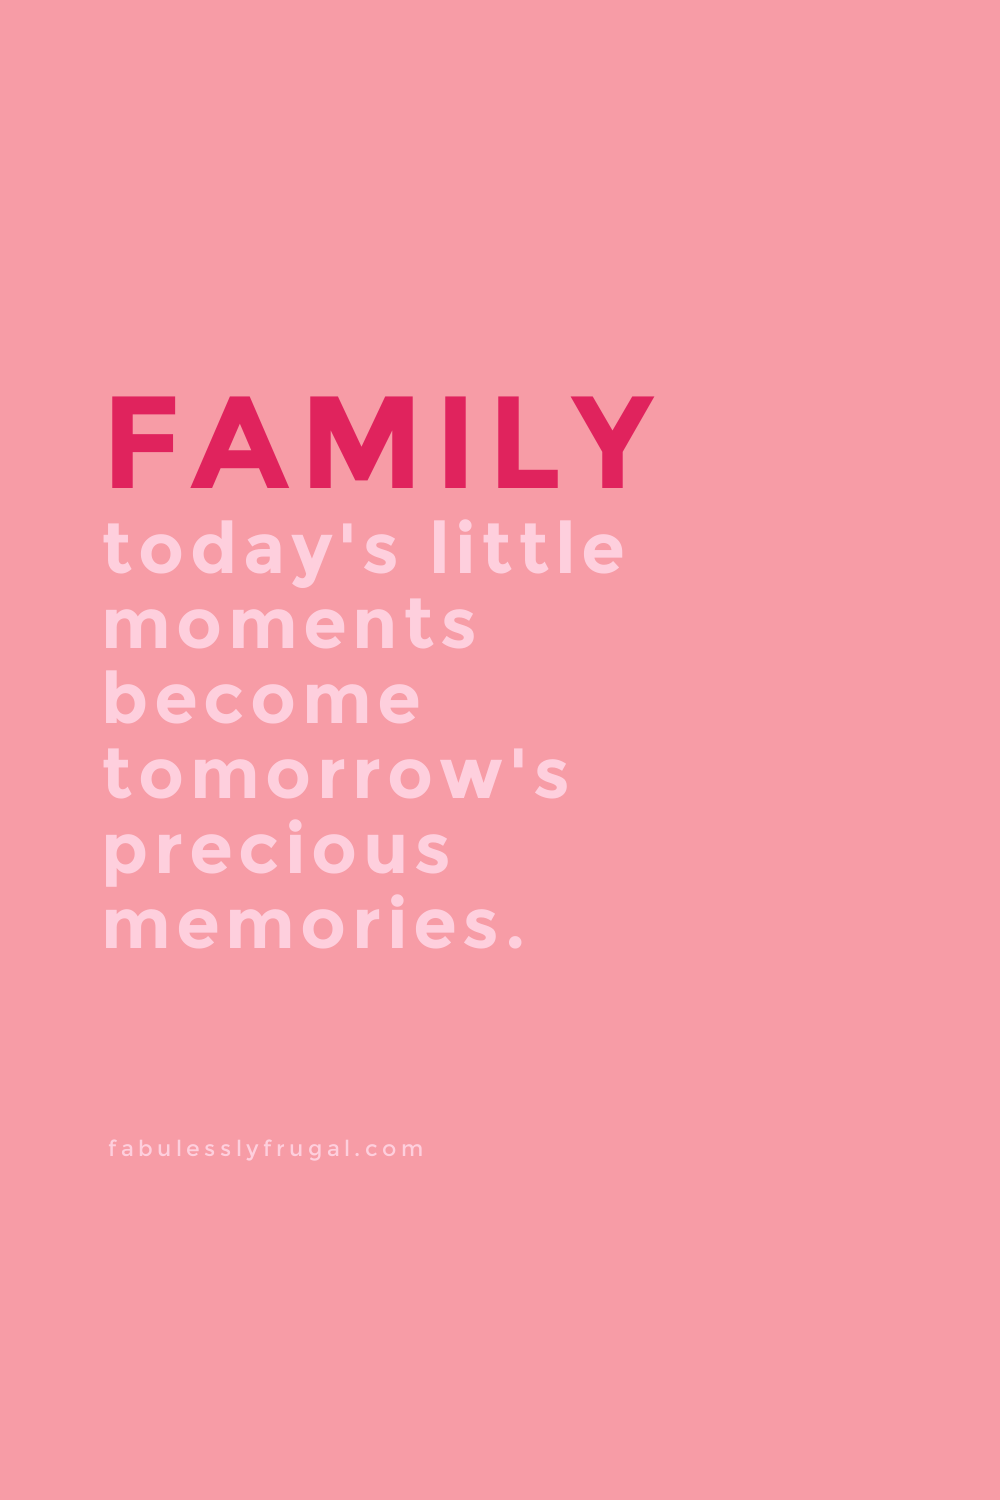 9 of the BEST Family Quotes to Inspire & Make You Smile